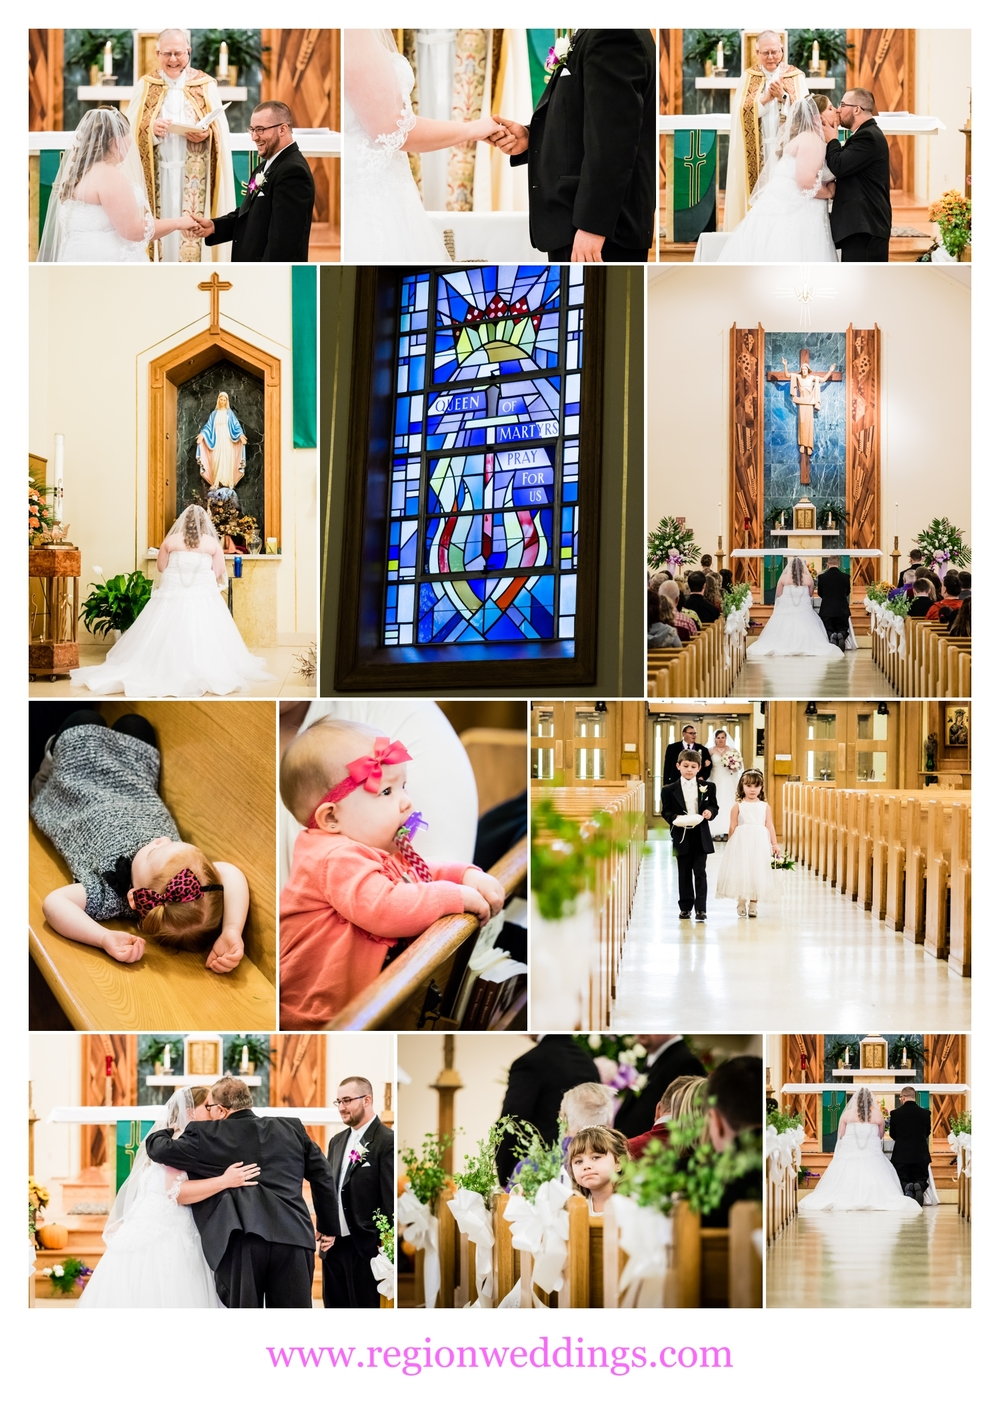 Wedding ceremony at St. Mary's Catholic Church in Griffith, Indiana.